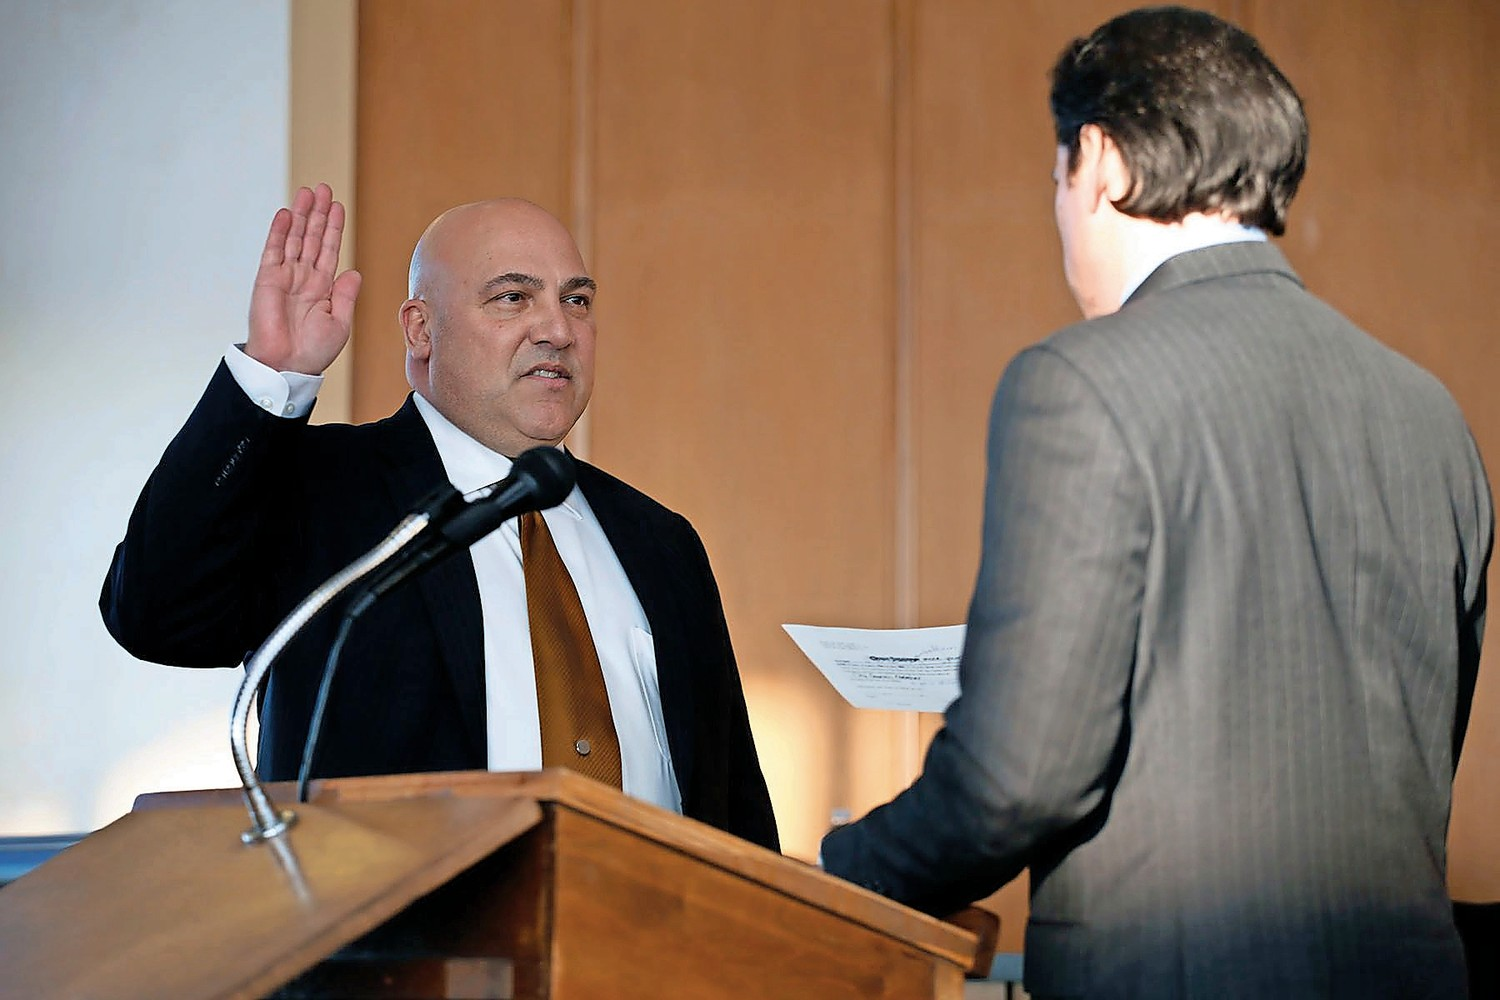 Councilman John Bendo was sworn in by State Sen. Todd Kaminsky. He called for bridging political divides on the council.